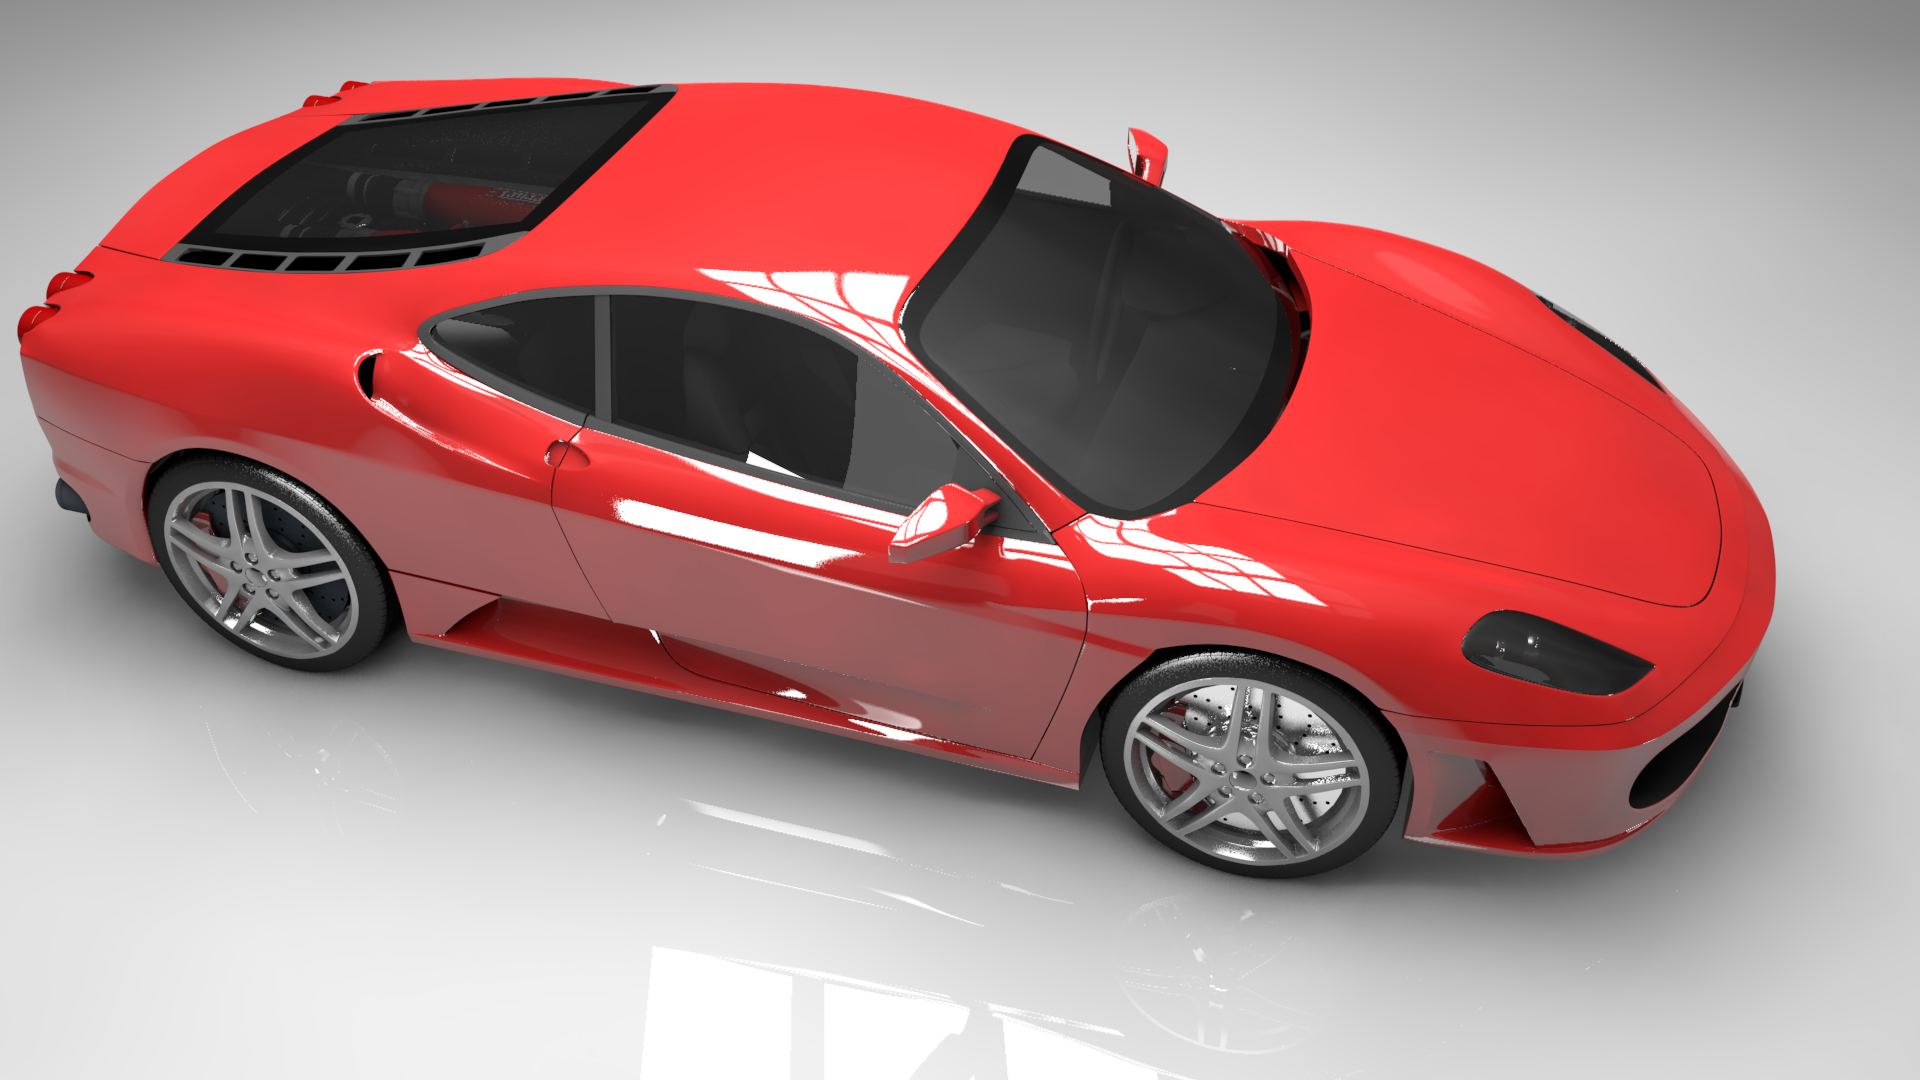 3d model 3ds max modeling vr ar low poly max for Exterior 3ds max model